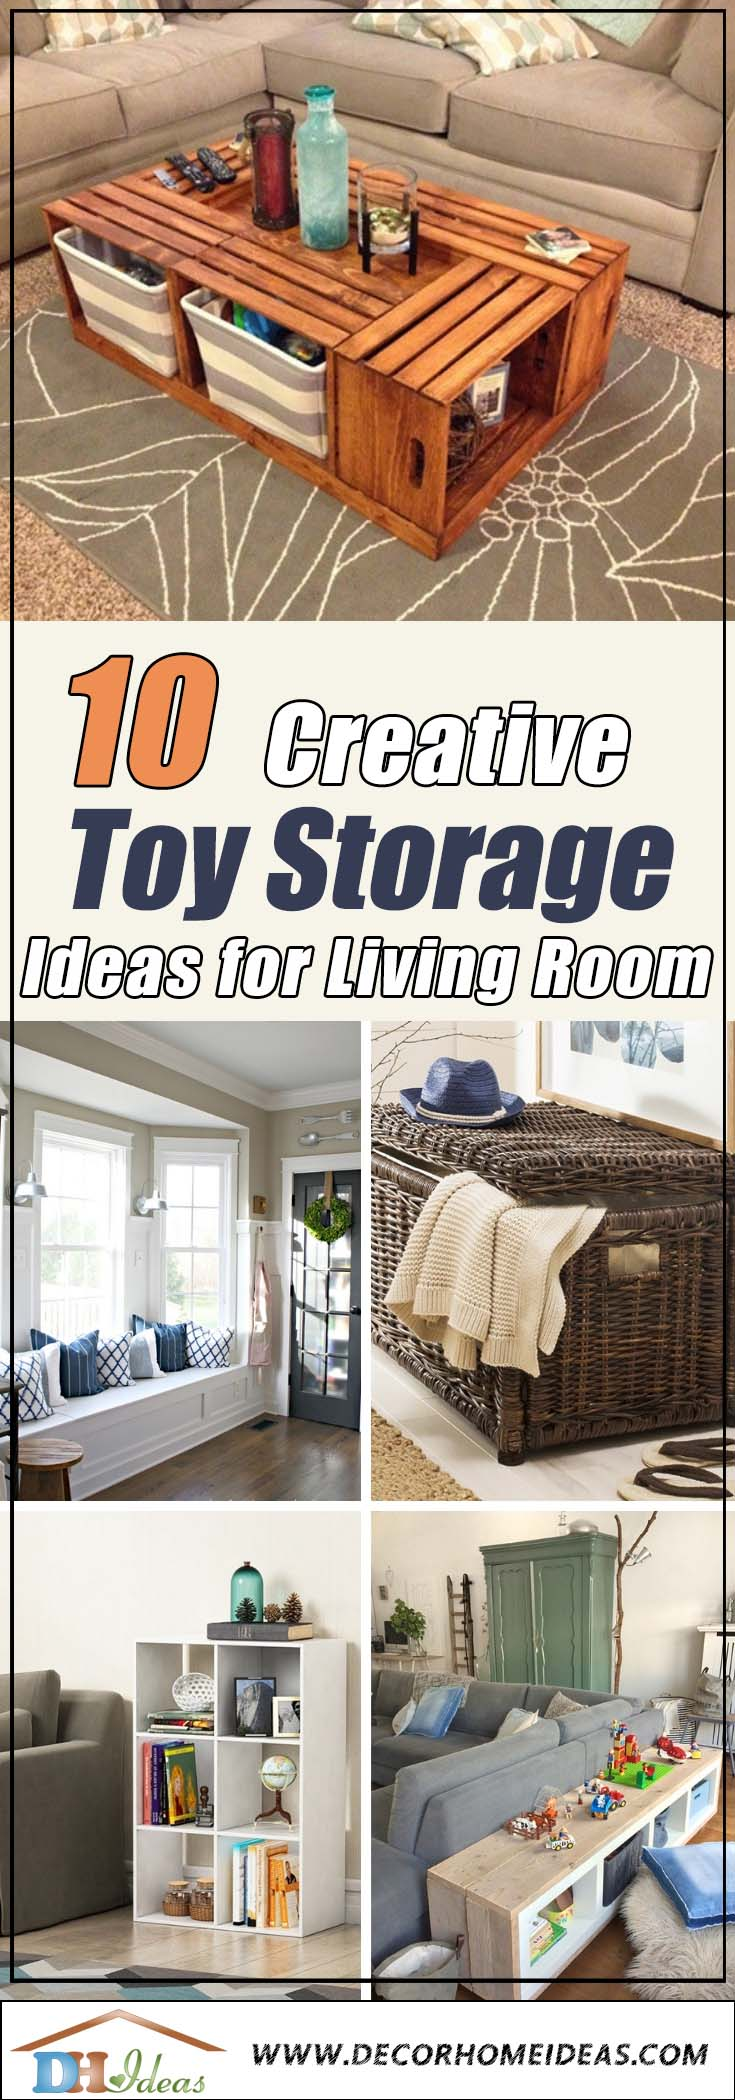 Toy Storage Ideas For Living Room #toystorage #livingroom #storage #organization #decorhomeiedeas